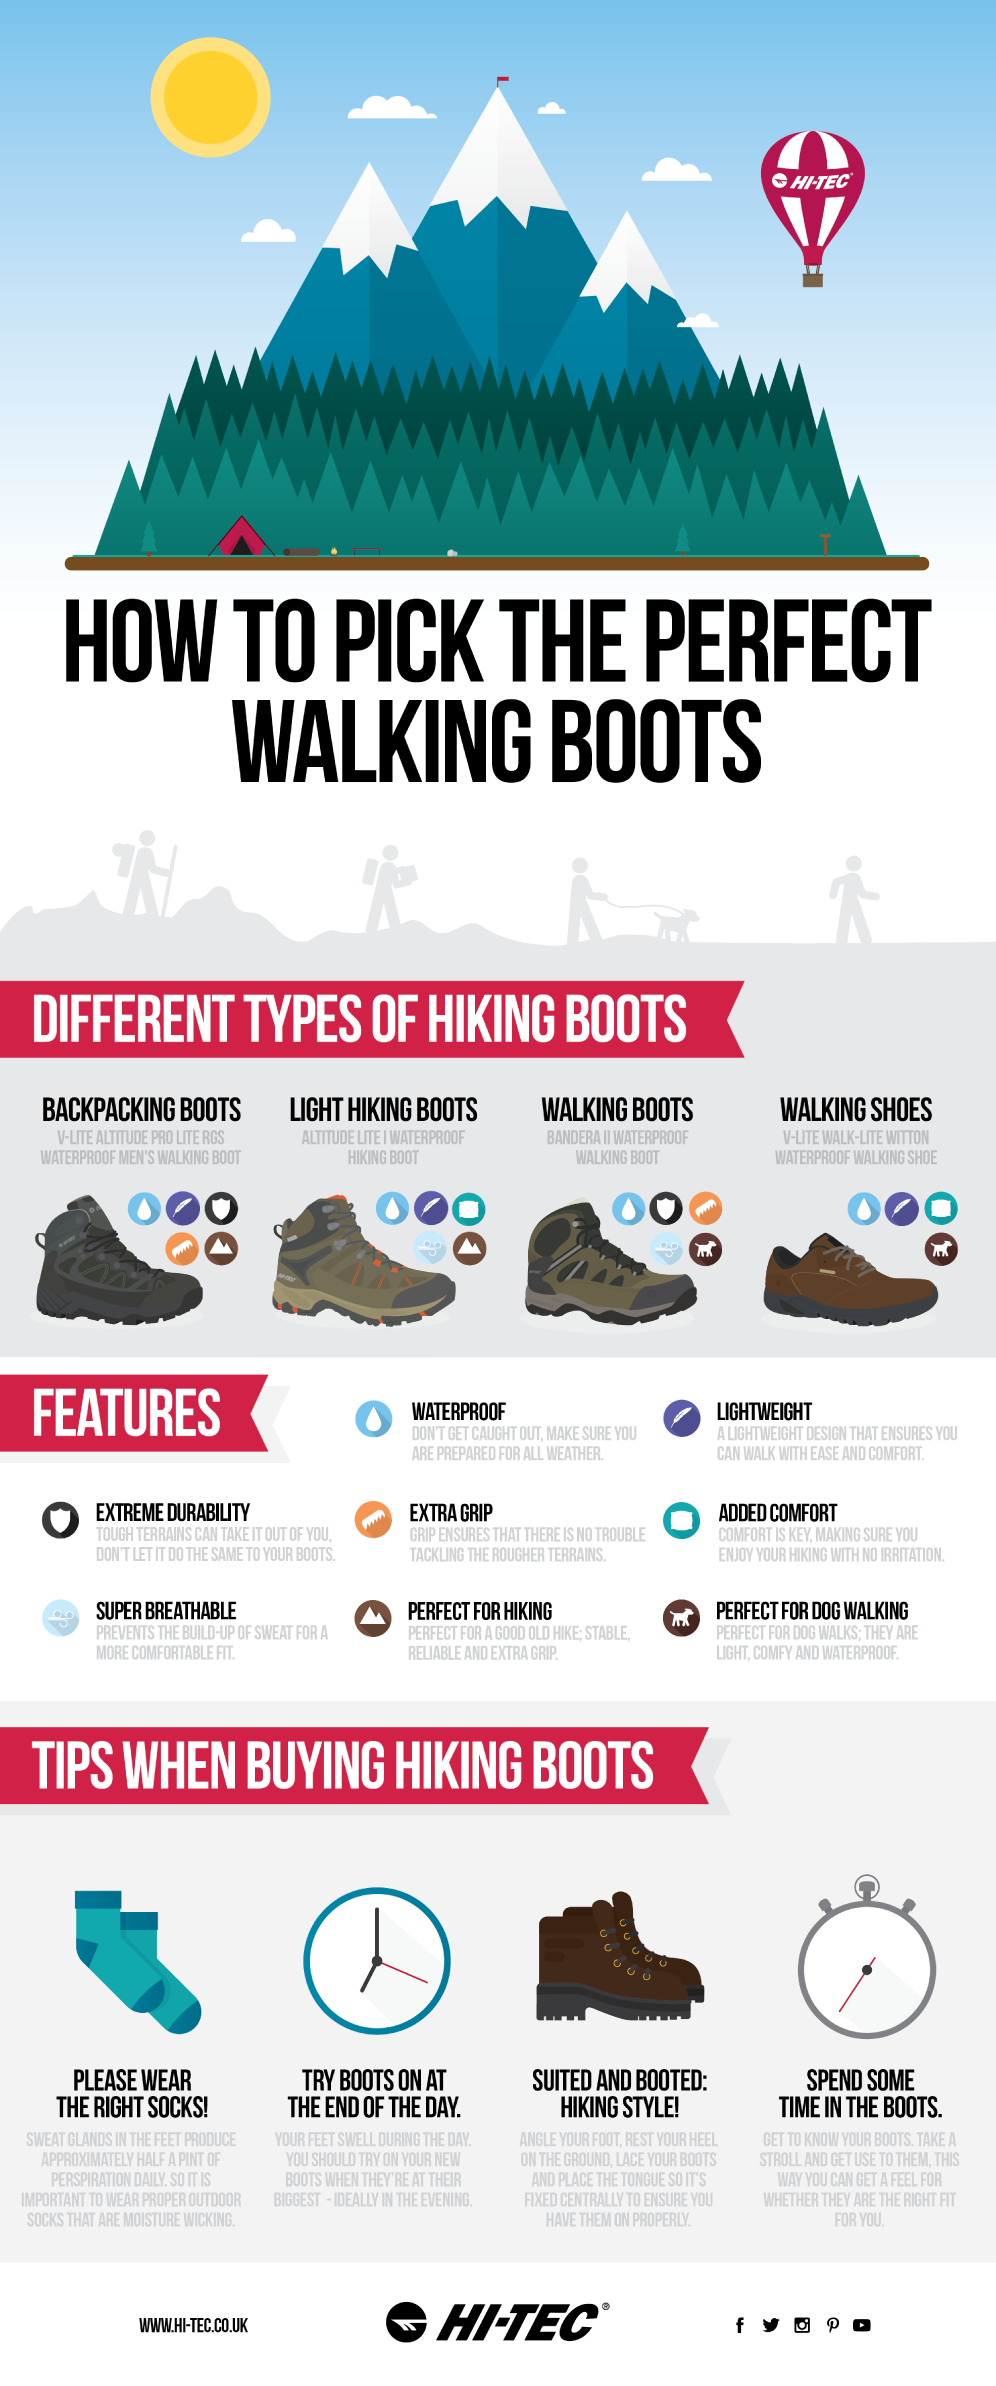 Hi-tec – How to pick the perfect walking boots